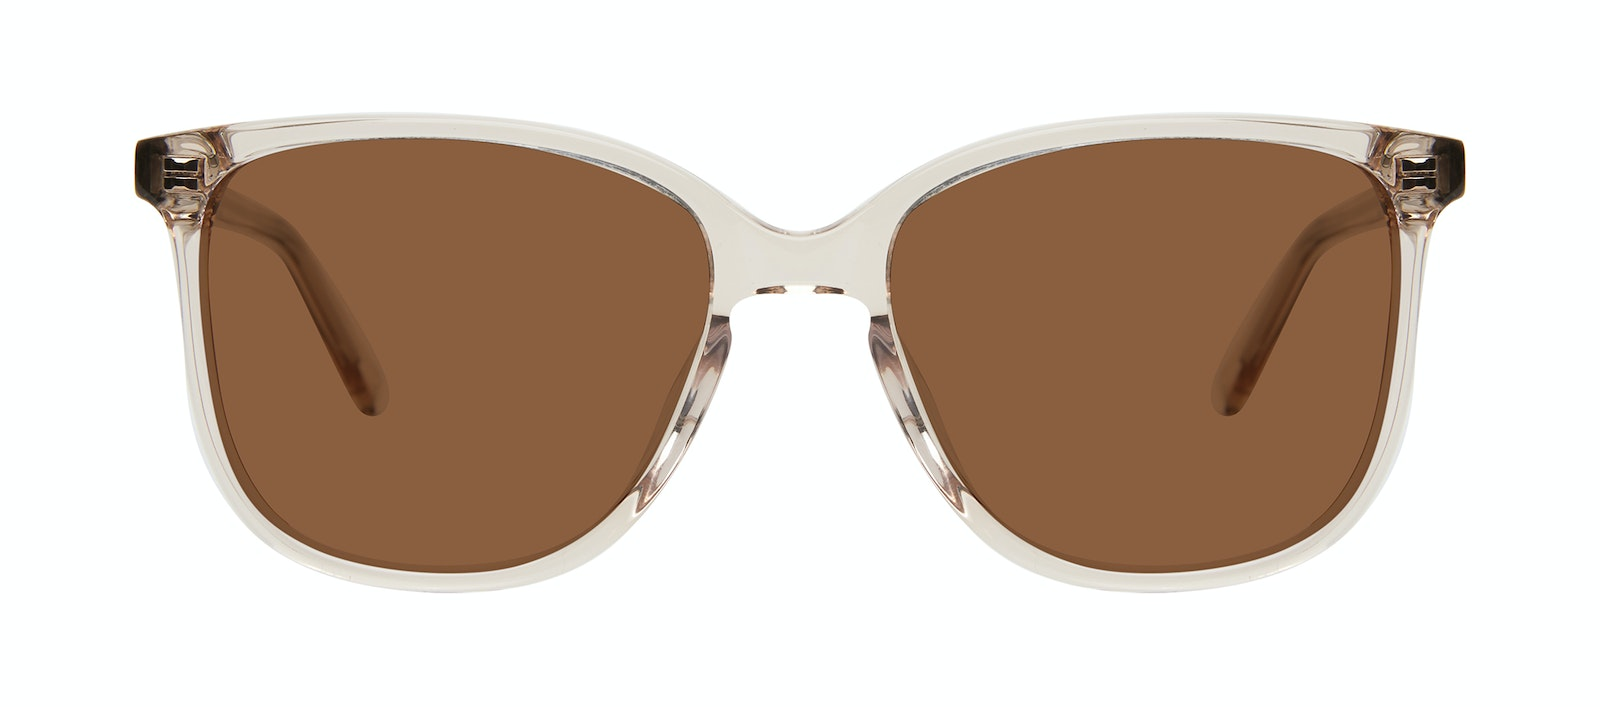 Affordable Fashion Glasses Square Sunglasses Women Lead Blond Front